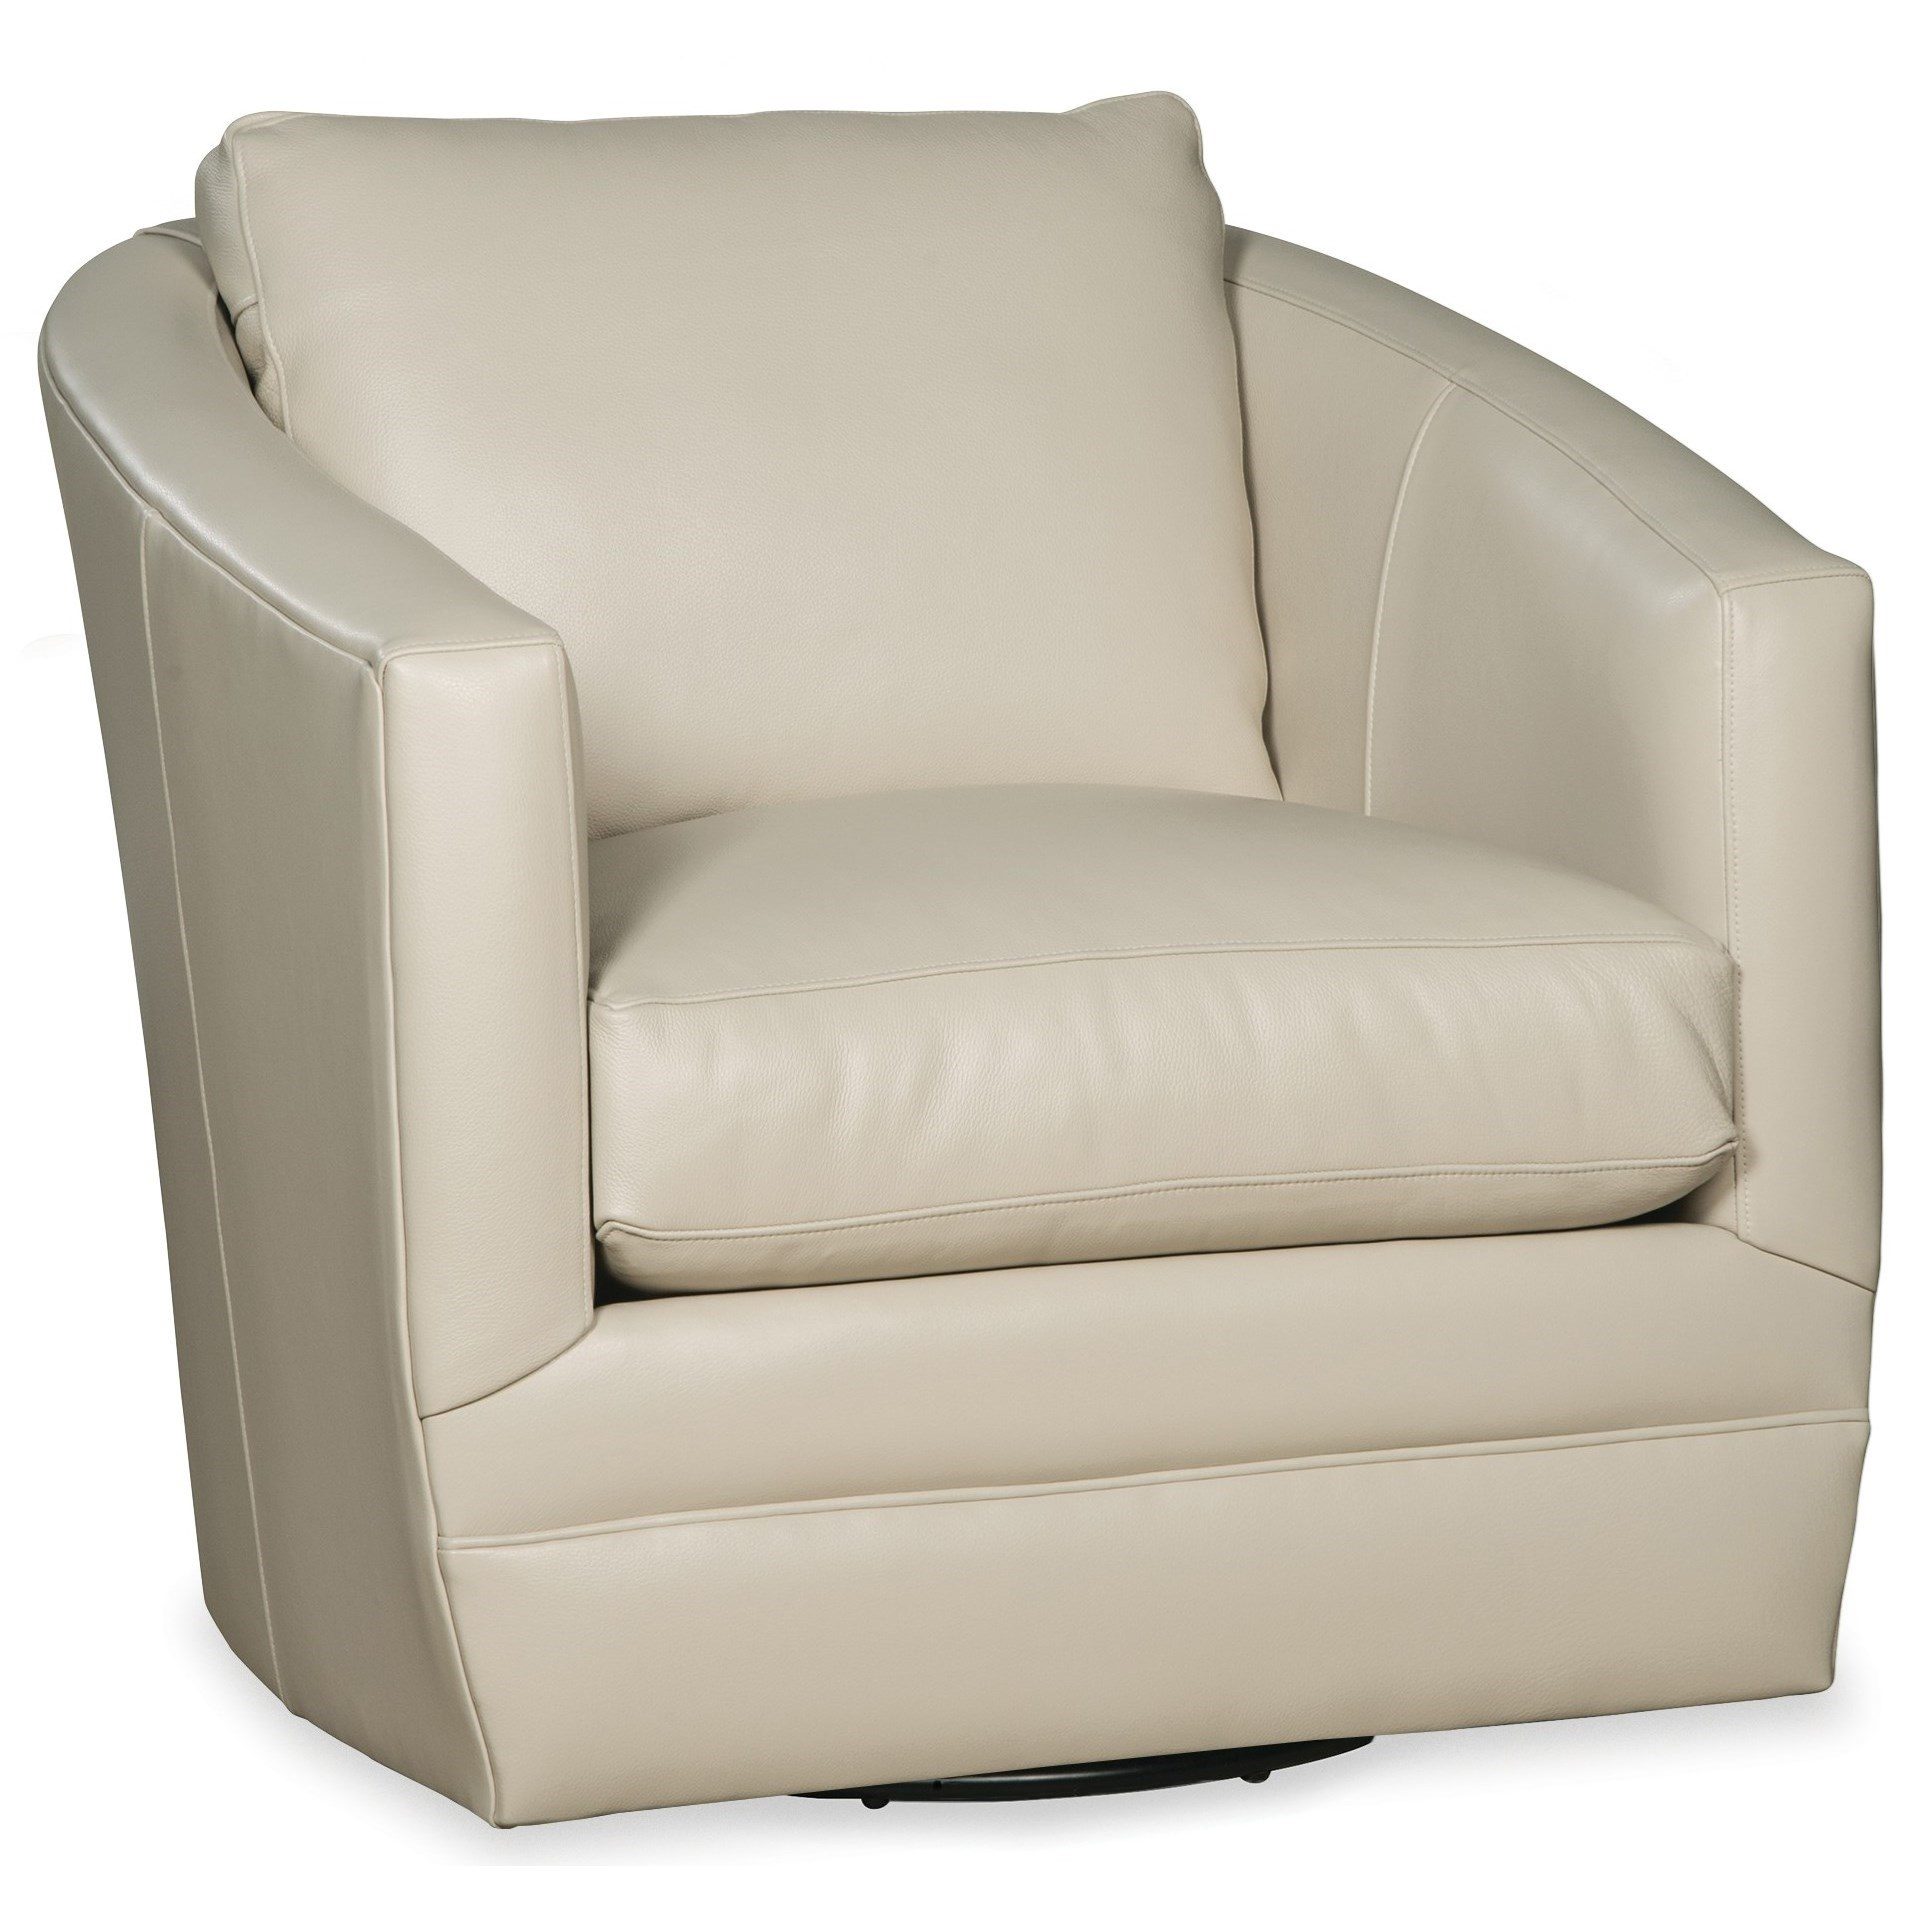 L063610 Swivel Glider Chair by Craftmaster at Baer's Furniture